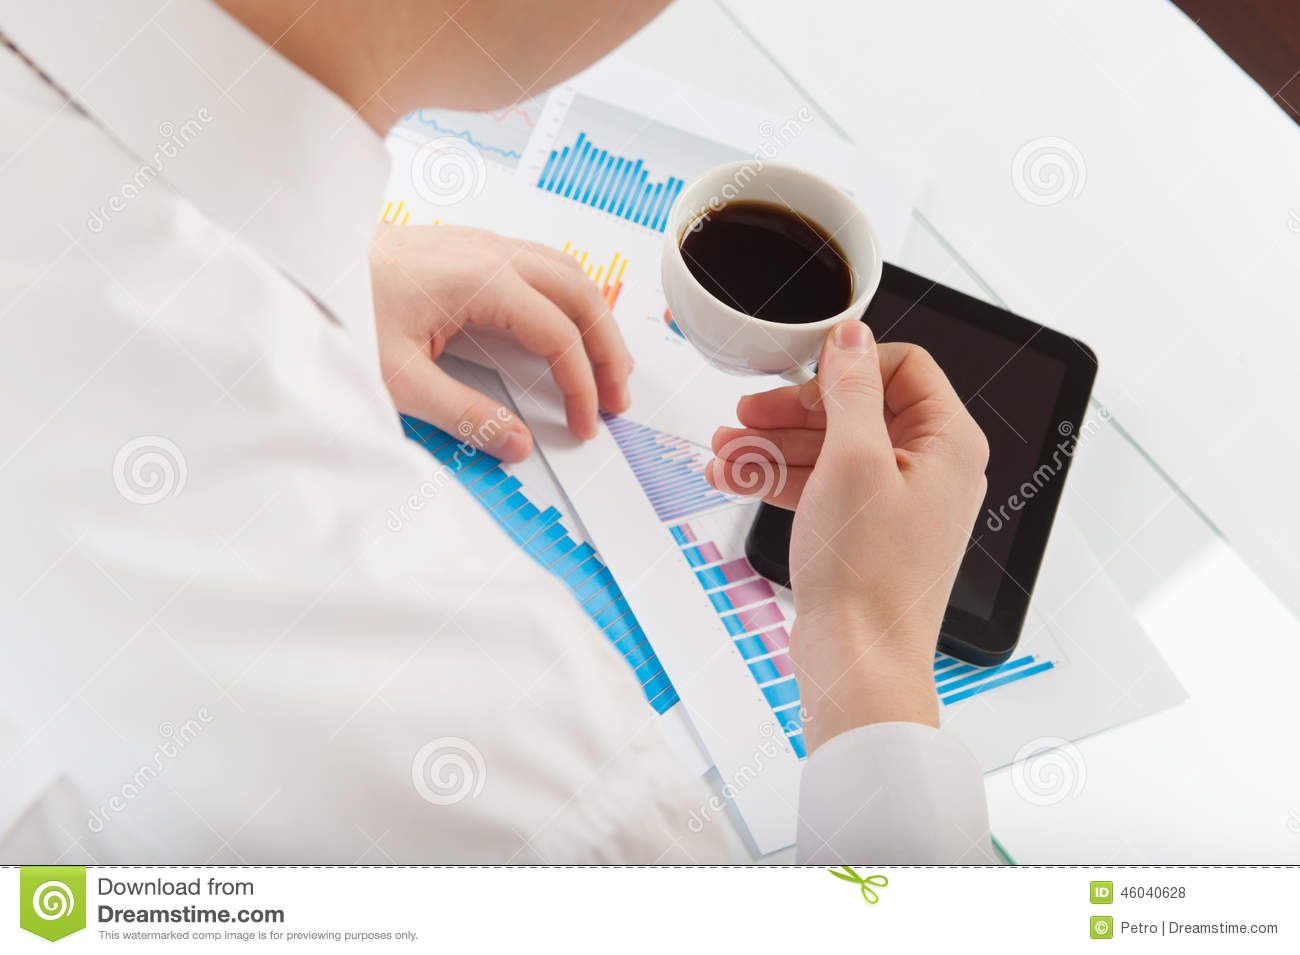 Take Break Coffeebreak : Businessman take coffee break stock photo image of angle